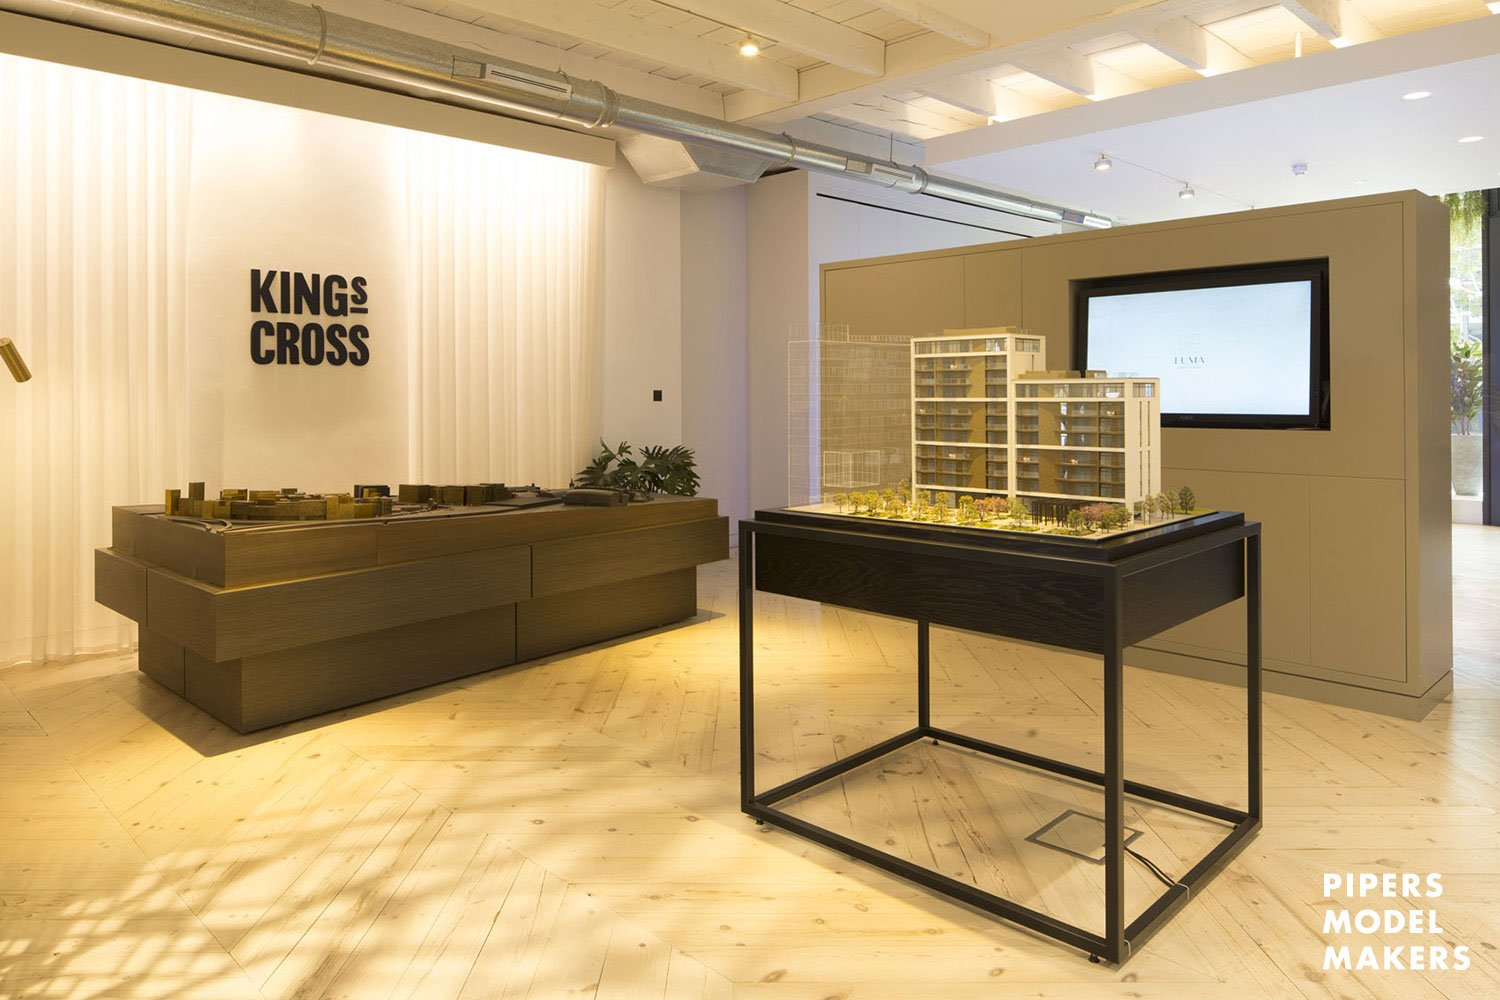 http://Kings%20Cross%20Argent%20Architectural%20Model